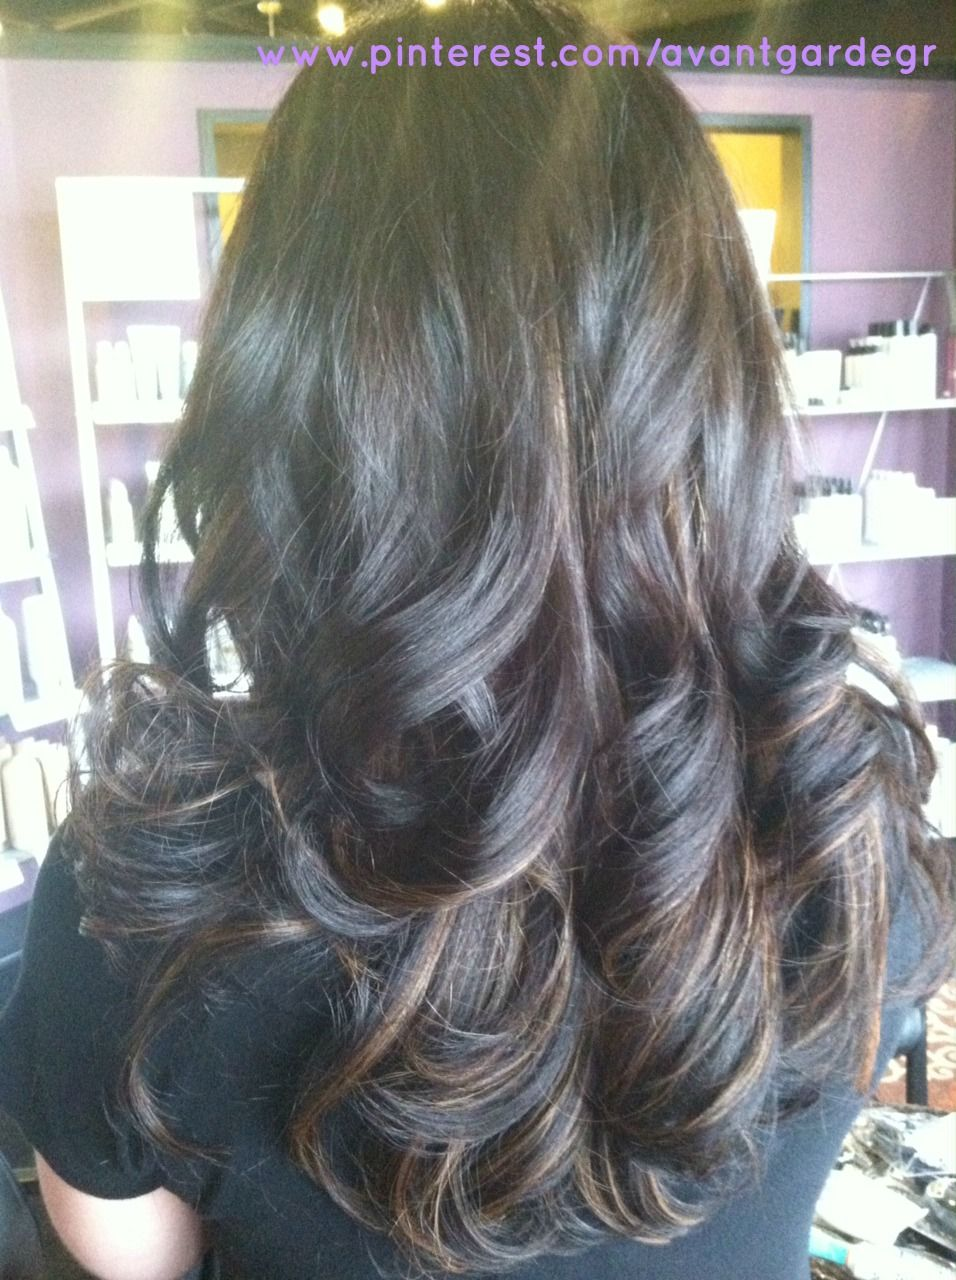 Peek A Boo Caramel Highlights By Lisa At Avantgarde Salon Spa In